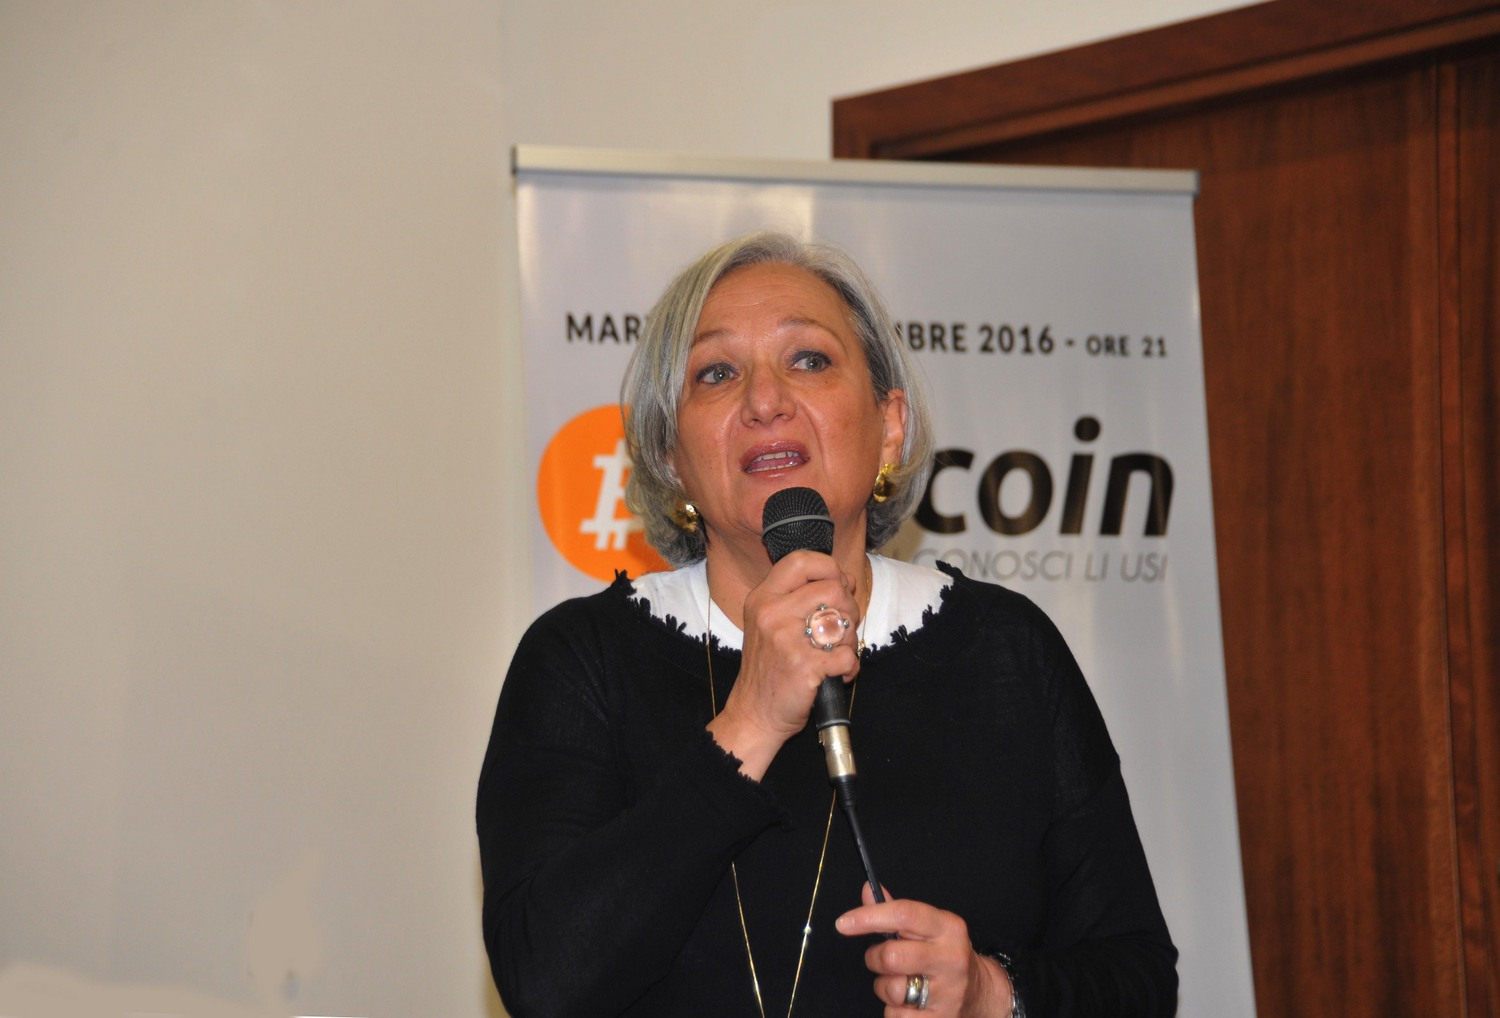 Anna Lapini explains the advantages of Bitcoin at a meetup in Arezzo